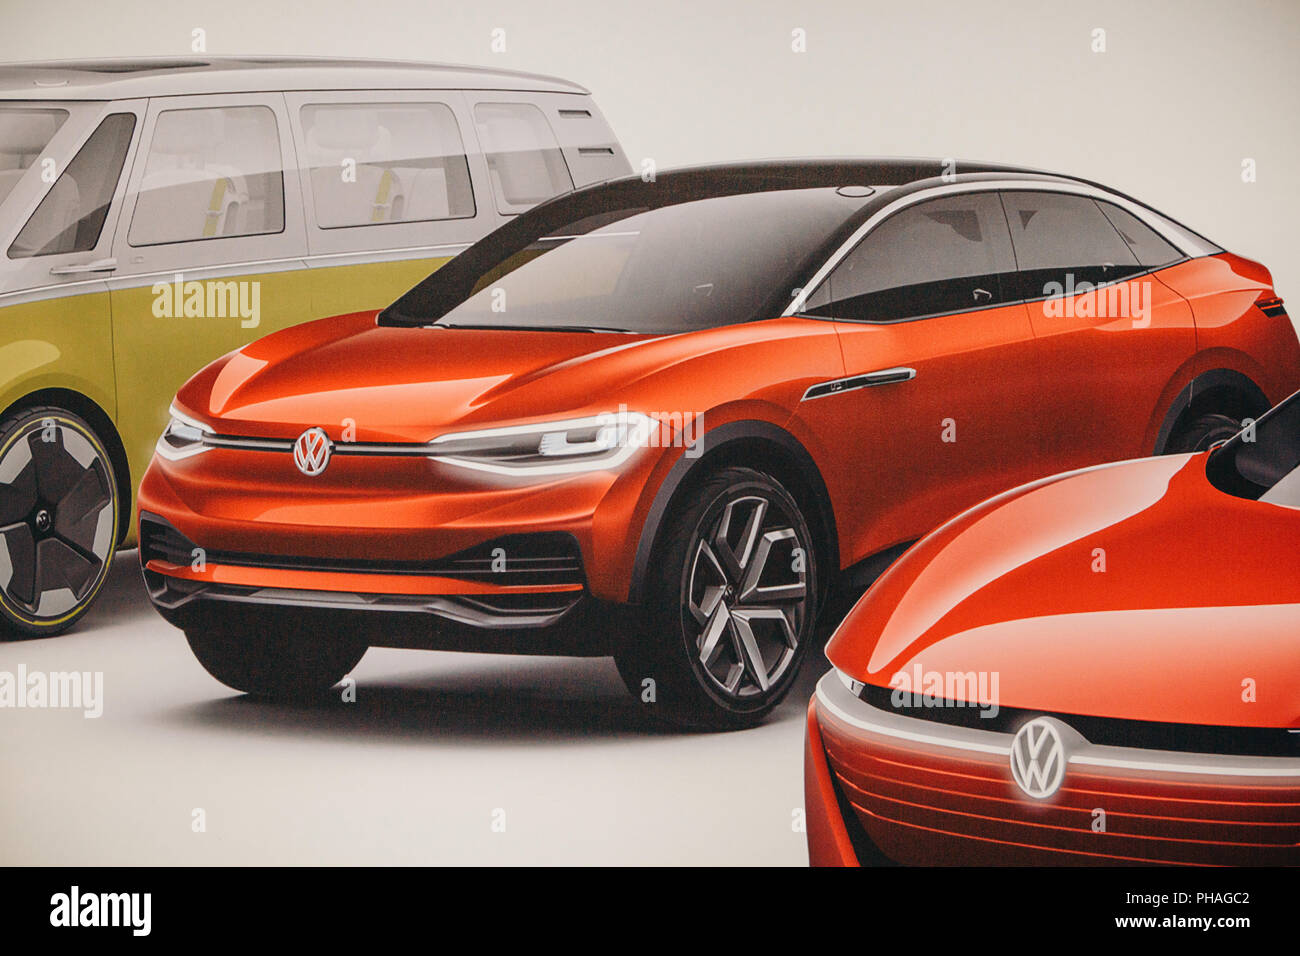 Berlin, August 29, 2018: Photo image of the new concept cars from Volkswagen presented at the official Auto Show Drive - the Volkswagen Group Forum in Berlin. Stock Photo